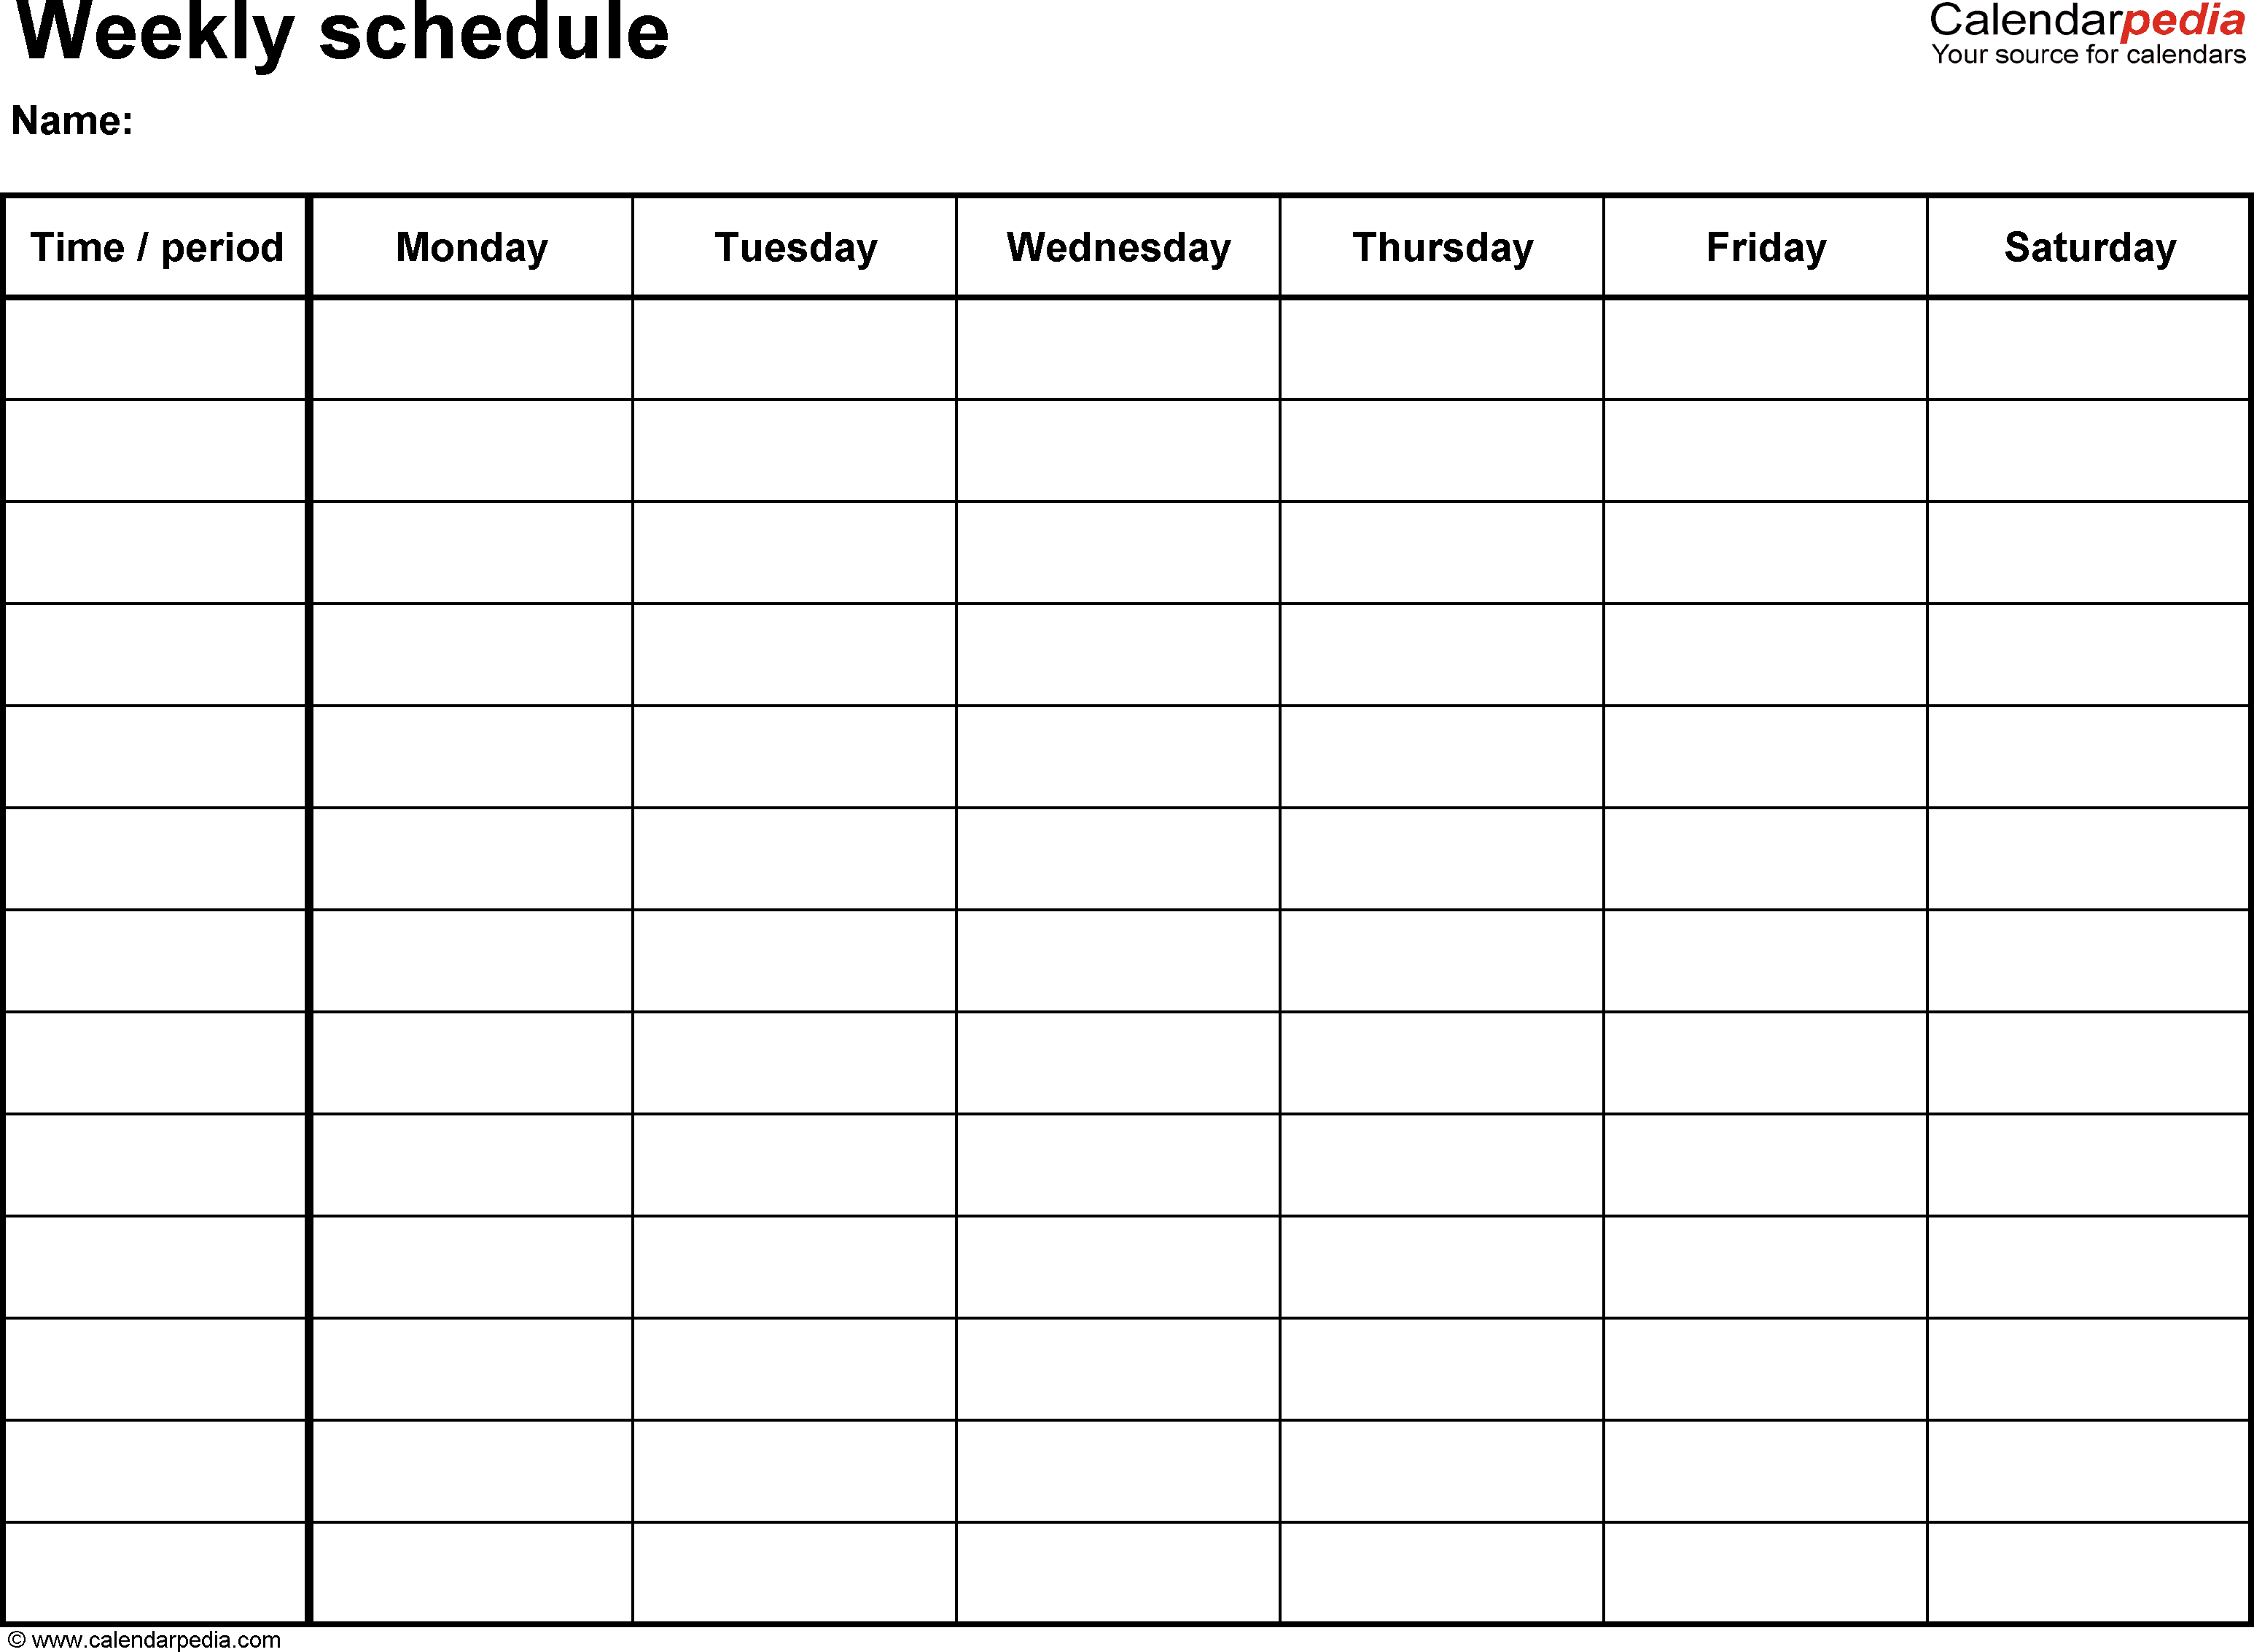 Free Weekly Schedule Templates For Pdf - 18 Templates - Free Printable Weekly Work Schedule